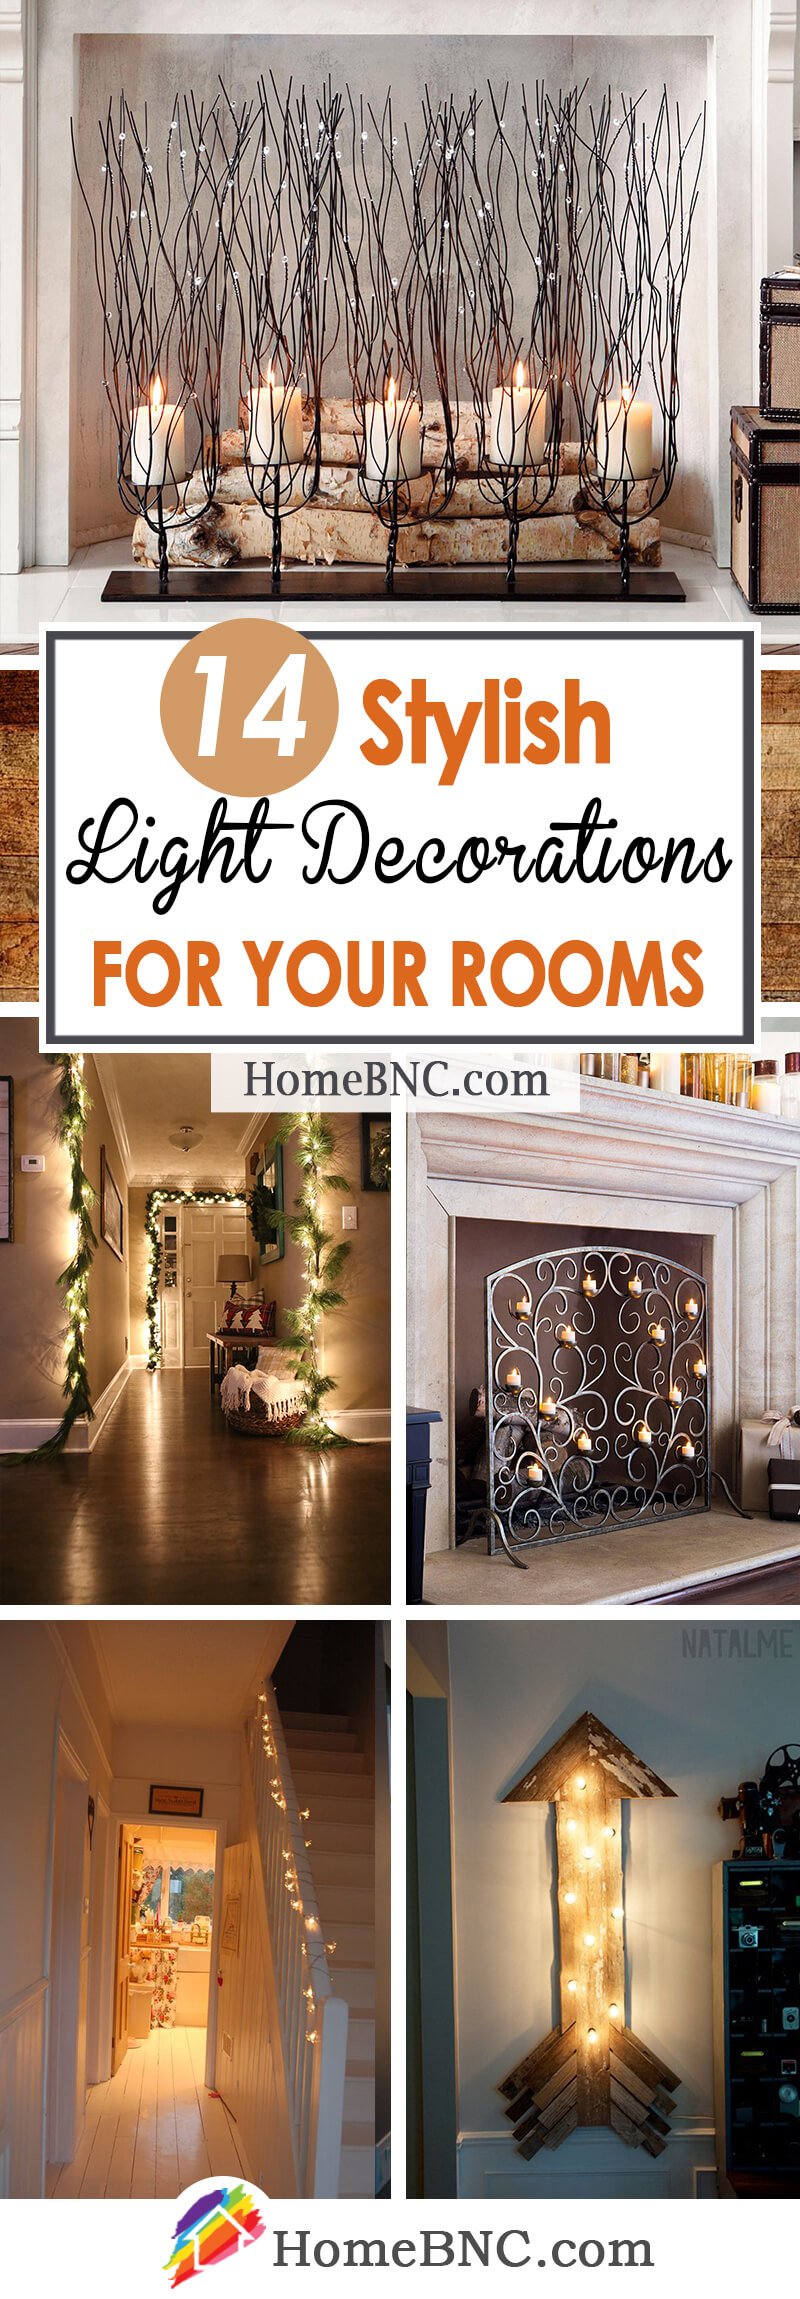 Decorating Your Rooms with Lights